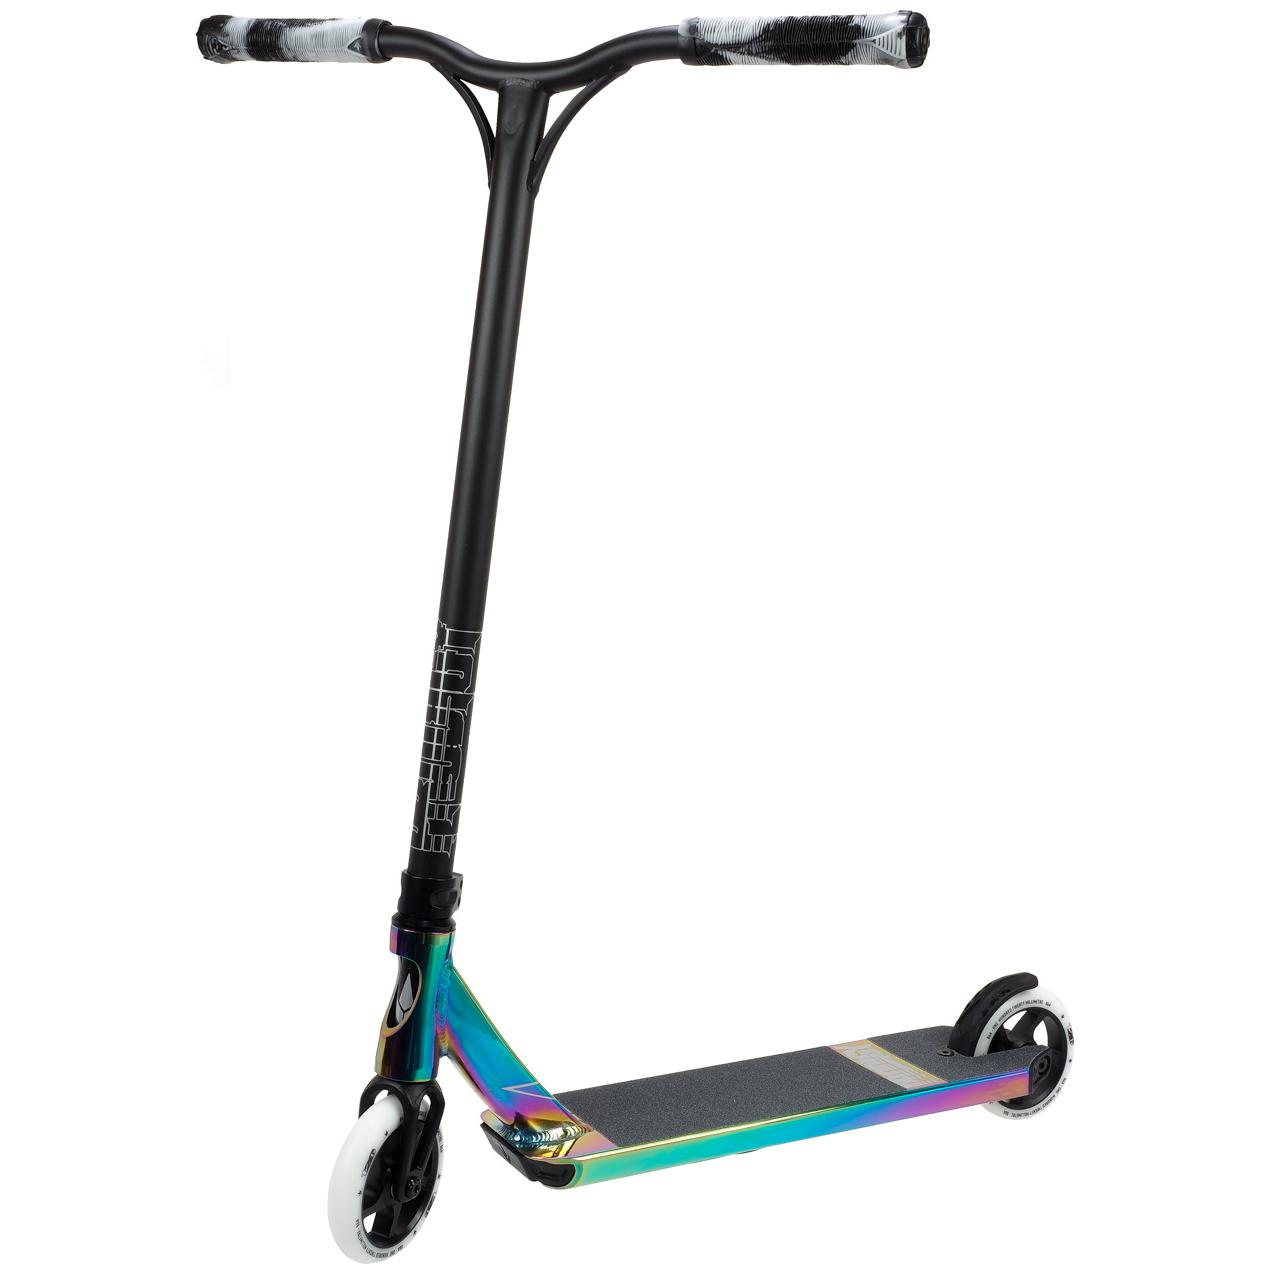 trottinette freestyle blunt prodigy s6 oilslick 120mm noir 15724 neuf ebay. Black Bedroom Furniture Sets. Home Design Ideas